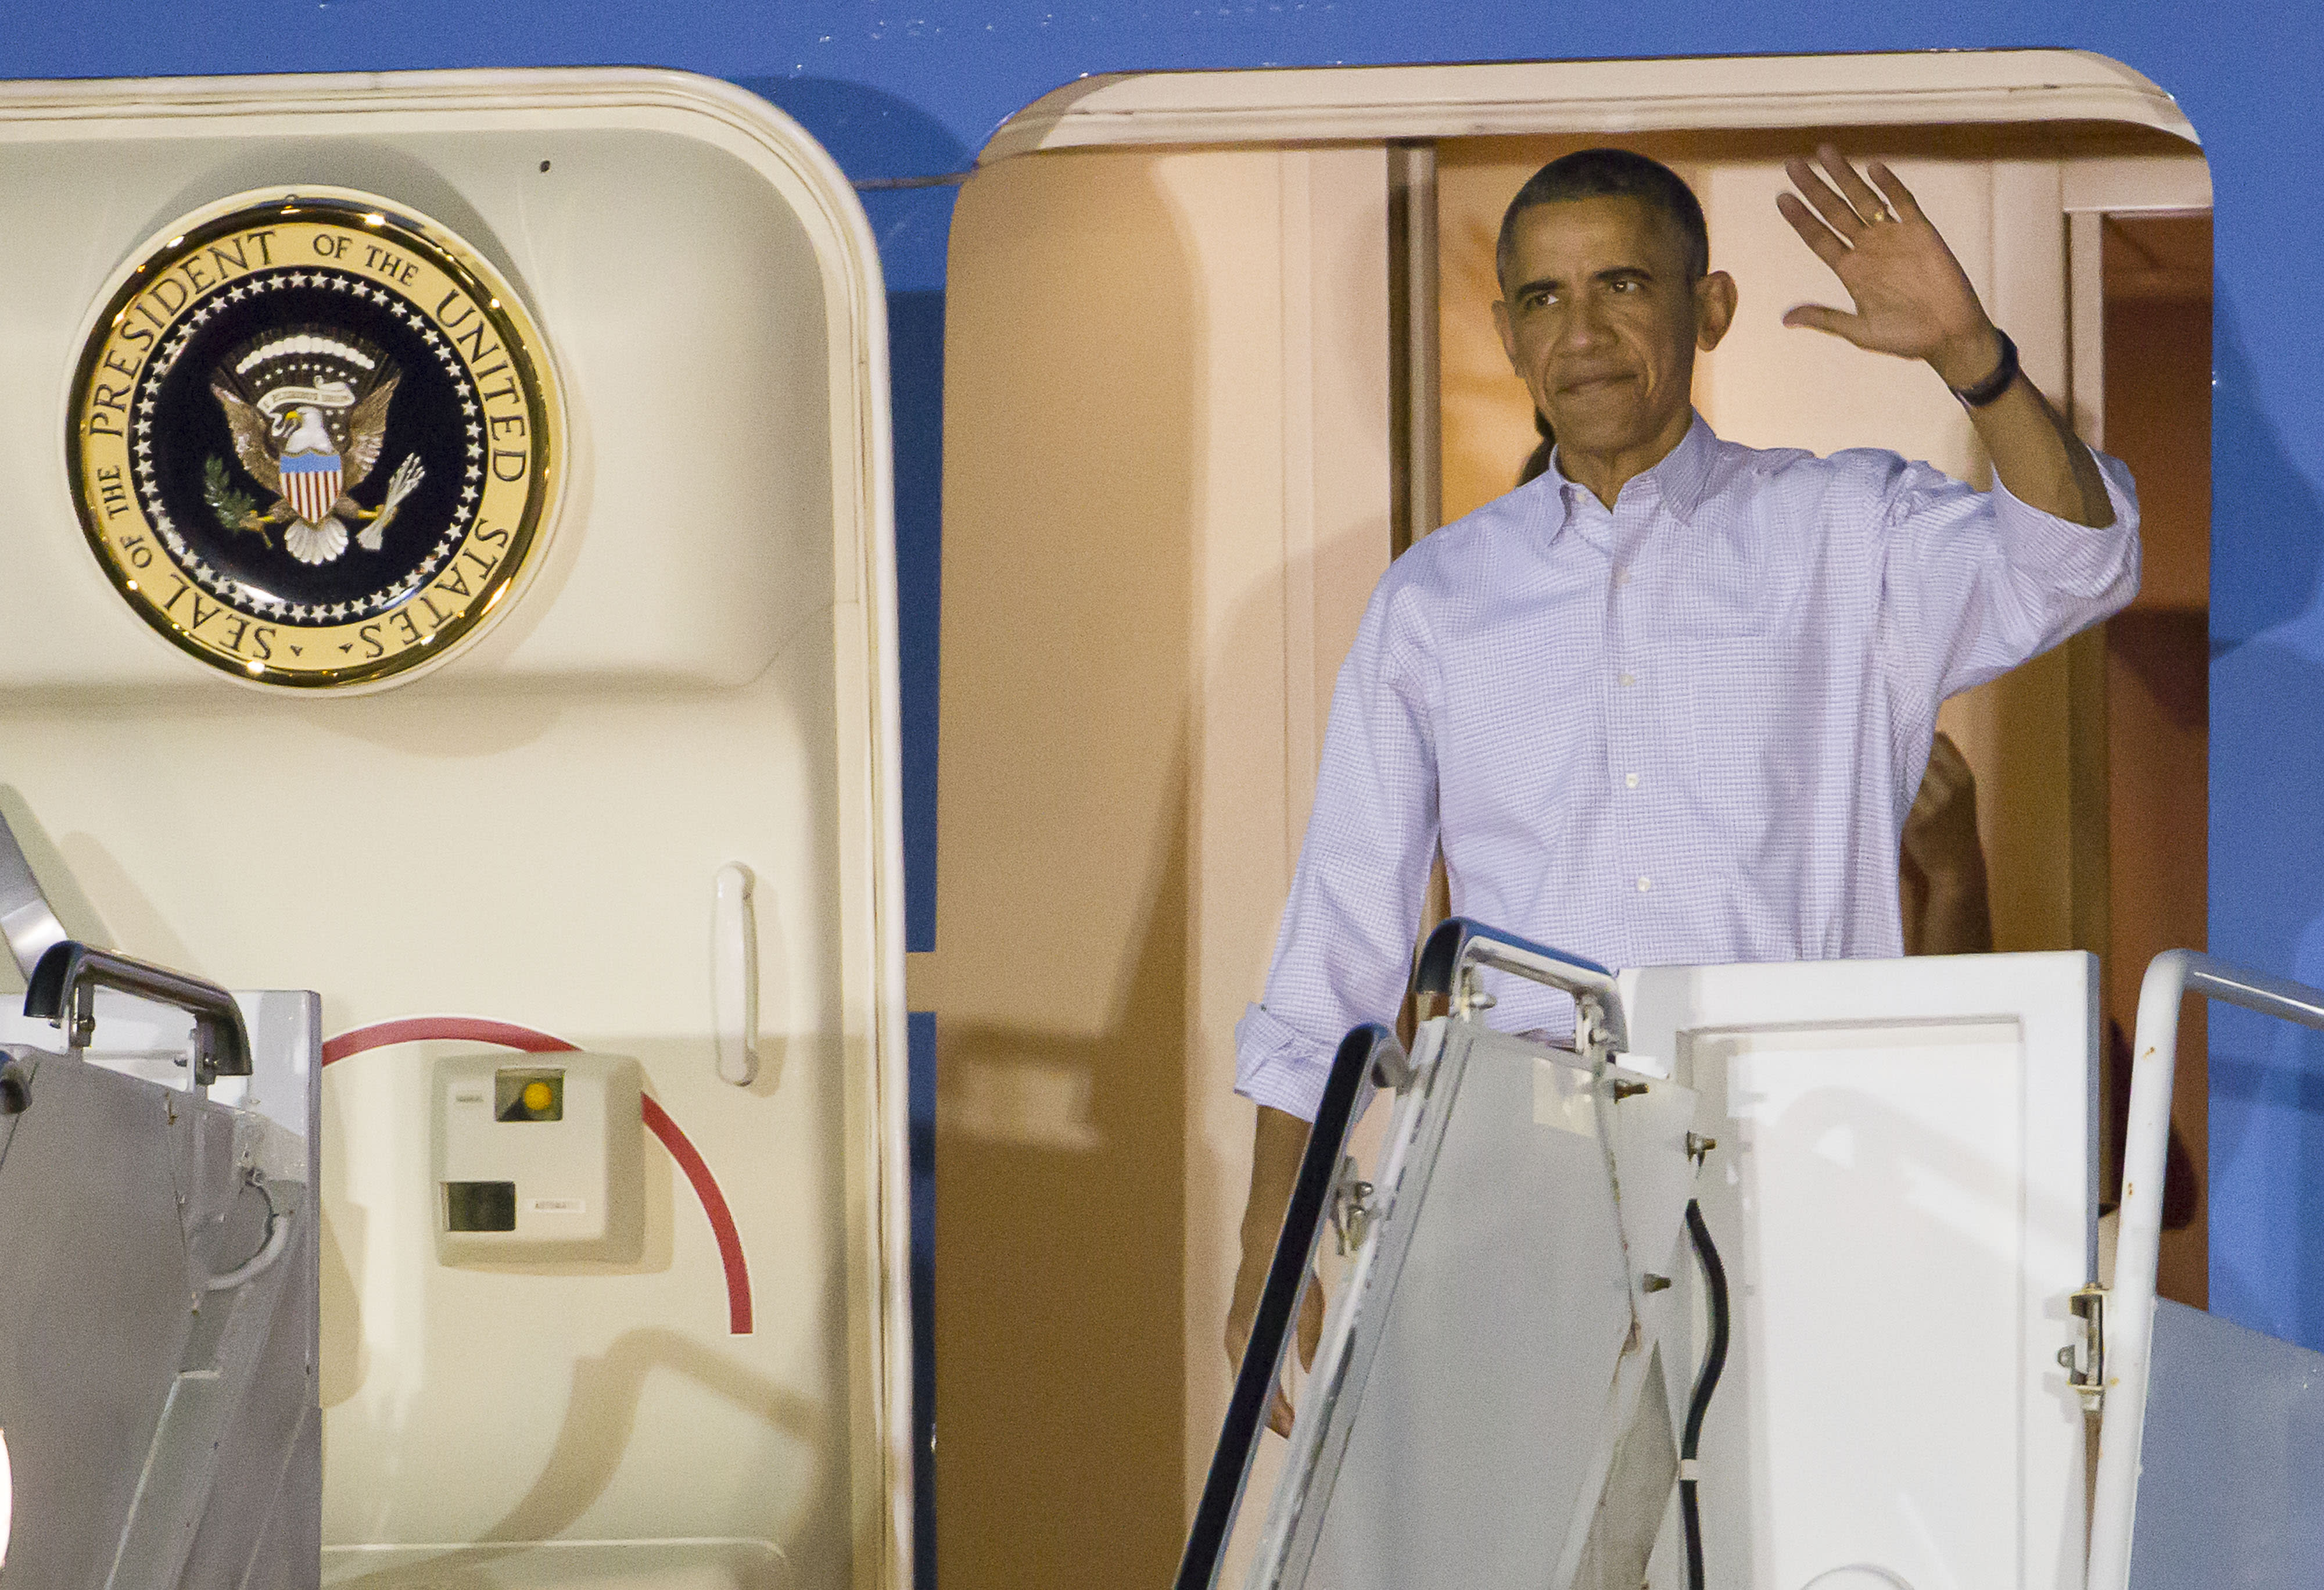 After turbulent year, Obama aims for quiet Hawaii getaway